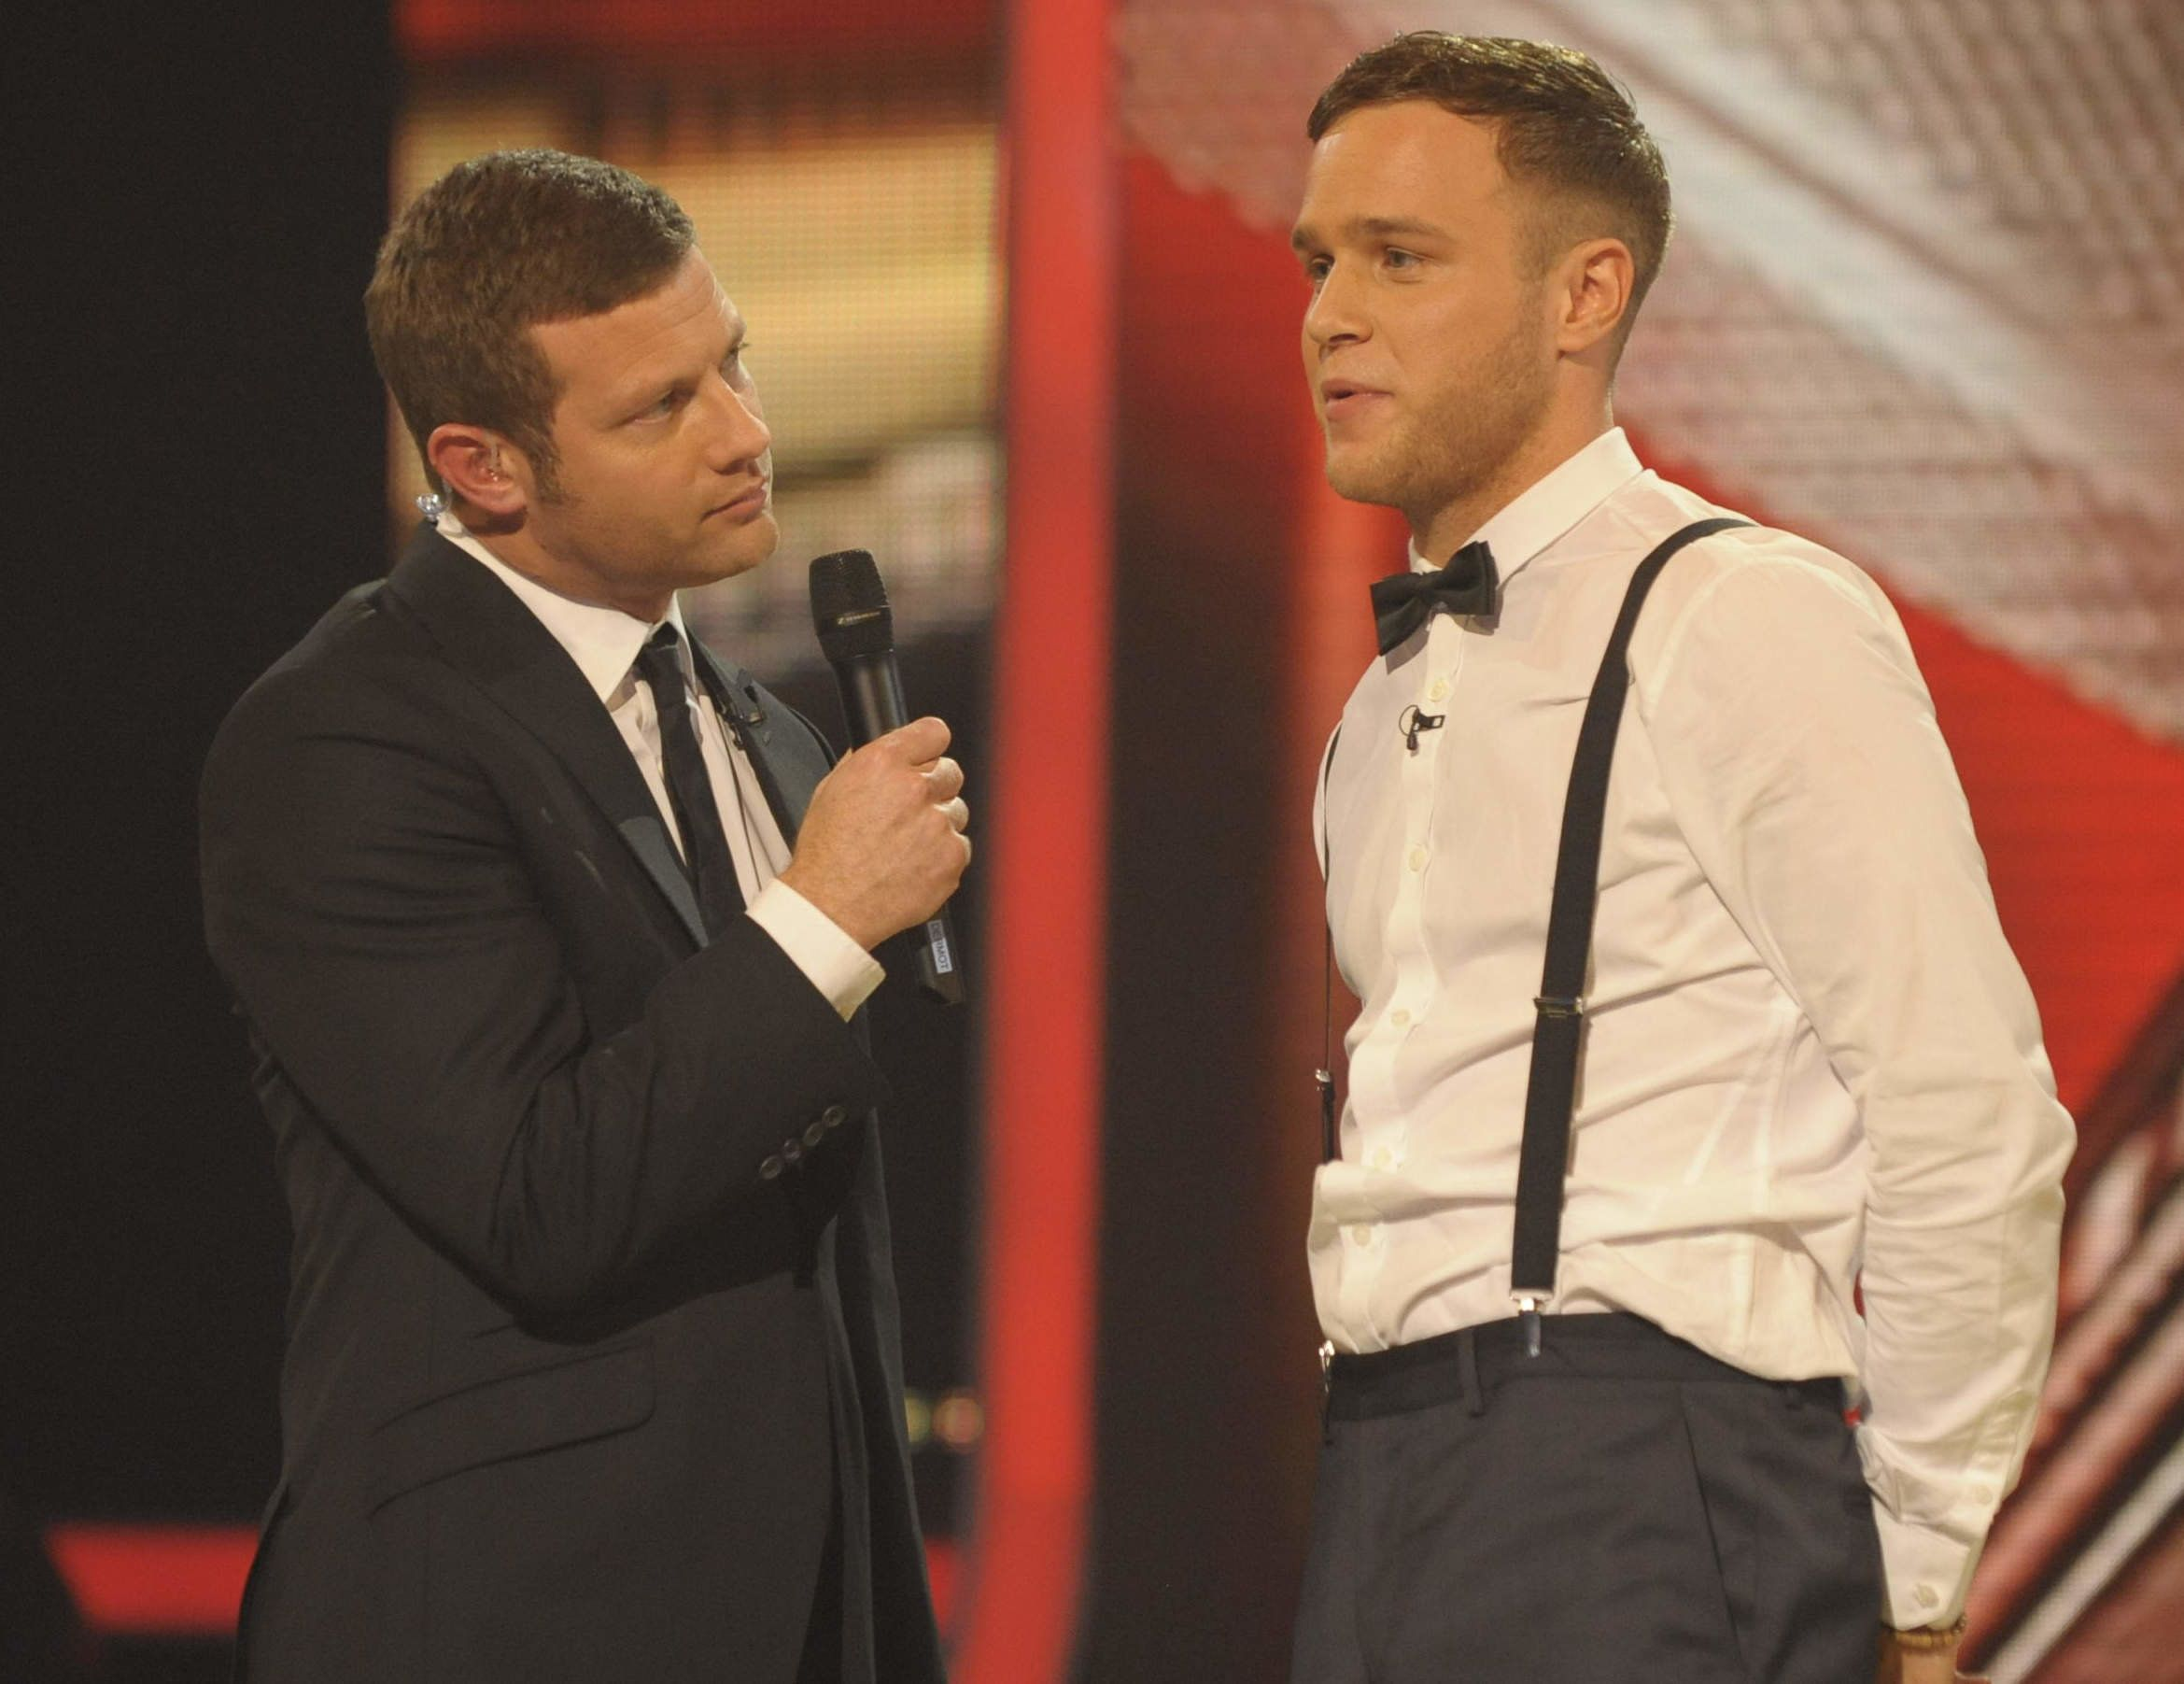 Olly Murs joins ITV's the Voice - has Simon Cowell missed a trick?